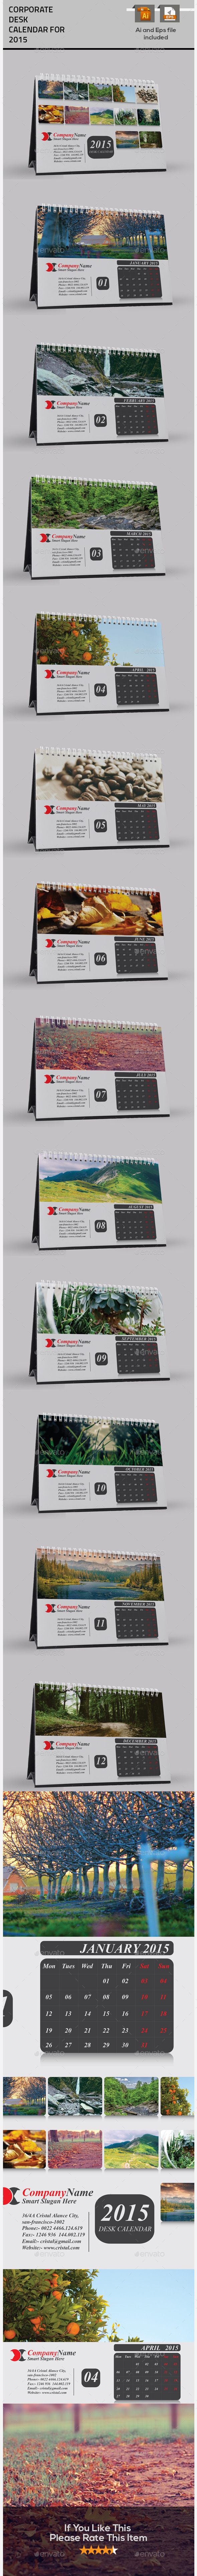 GraphicRiver Nice Desktop Calendar For 2015 9601025